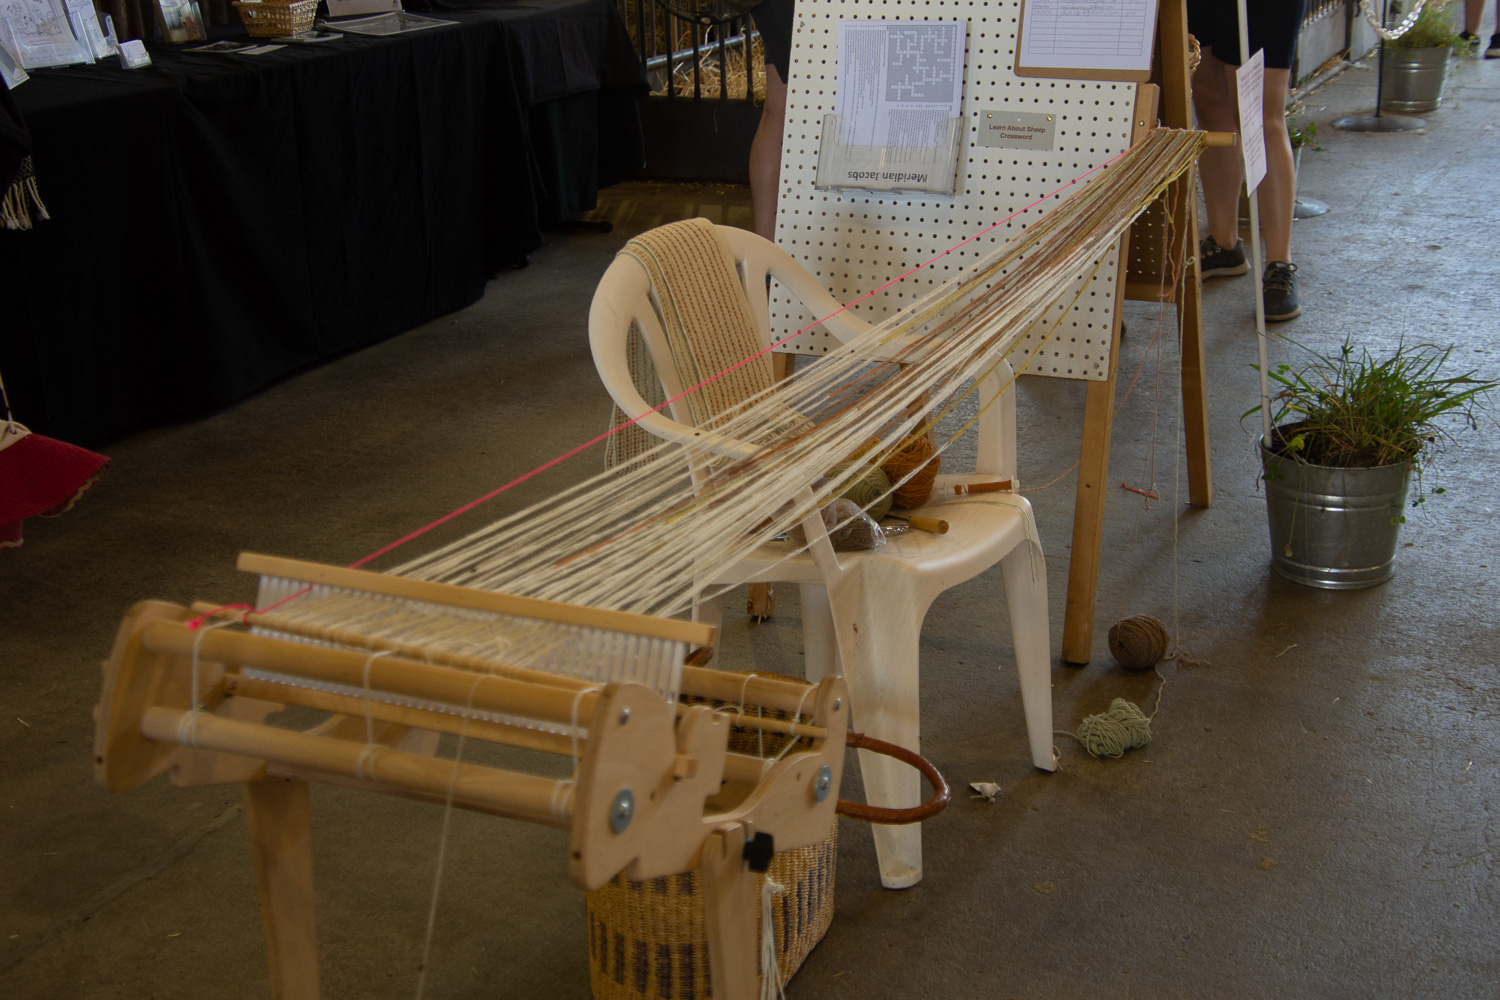 Warping a rigid heddle loom at the fair.